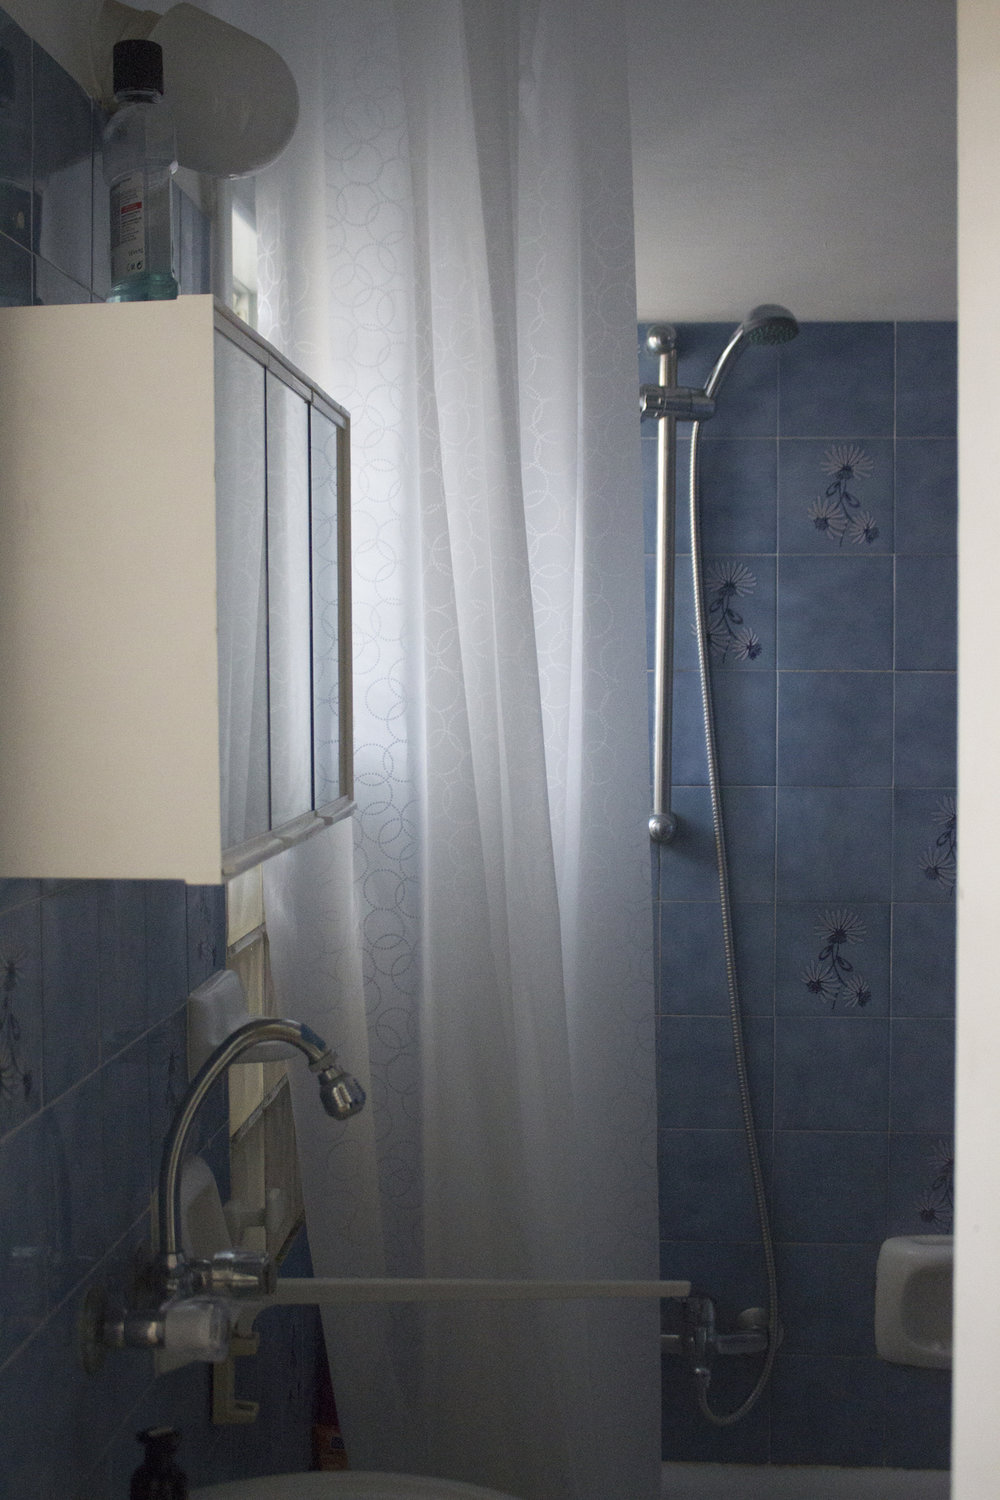 The Blue Tile Bathroom in Rishon LeZion, Israel apartment, photographed by Geena Matuson @geenamatuson #thegirlmirage.